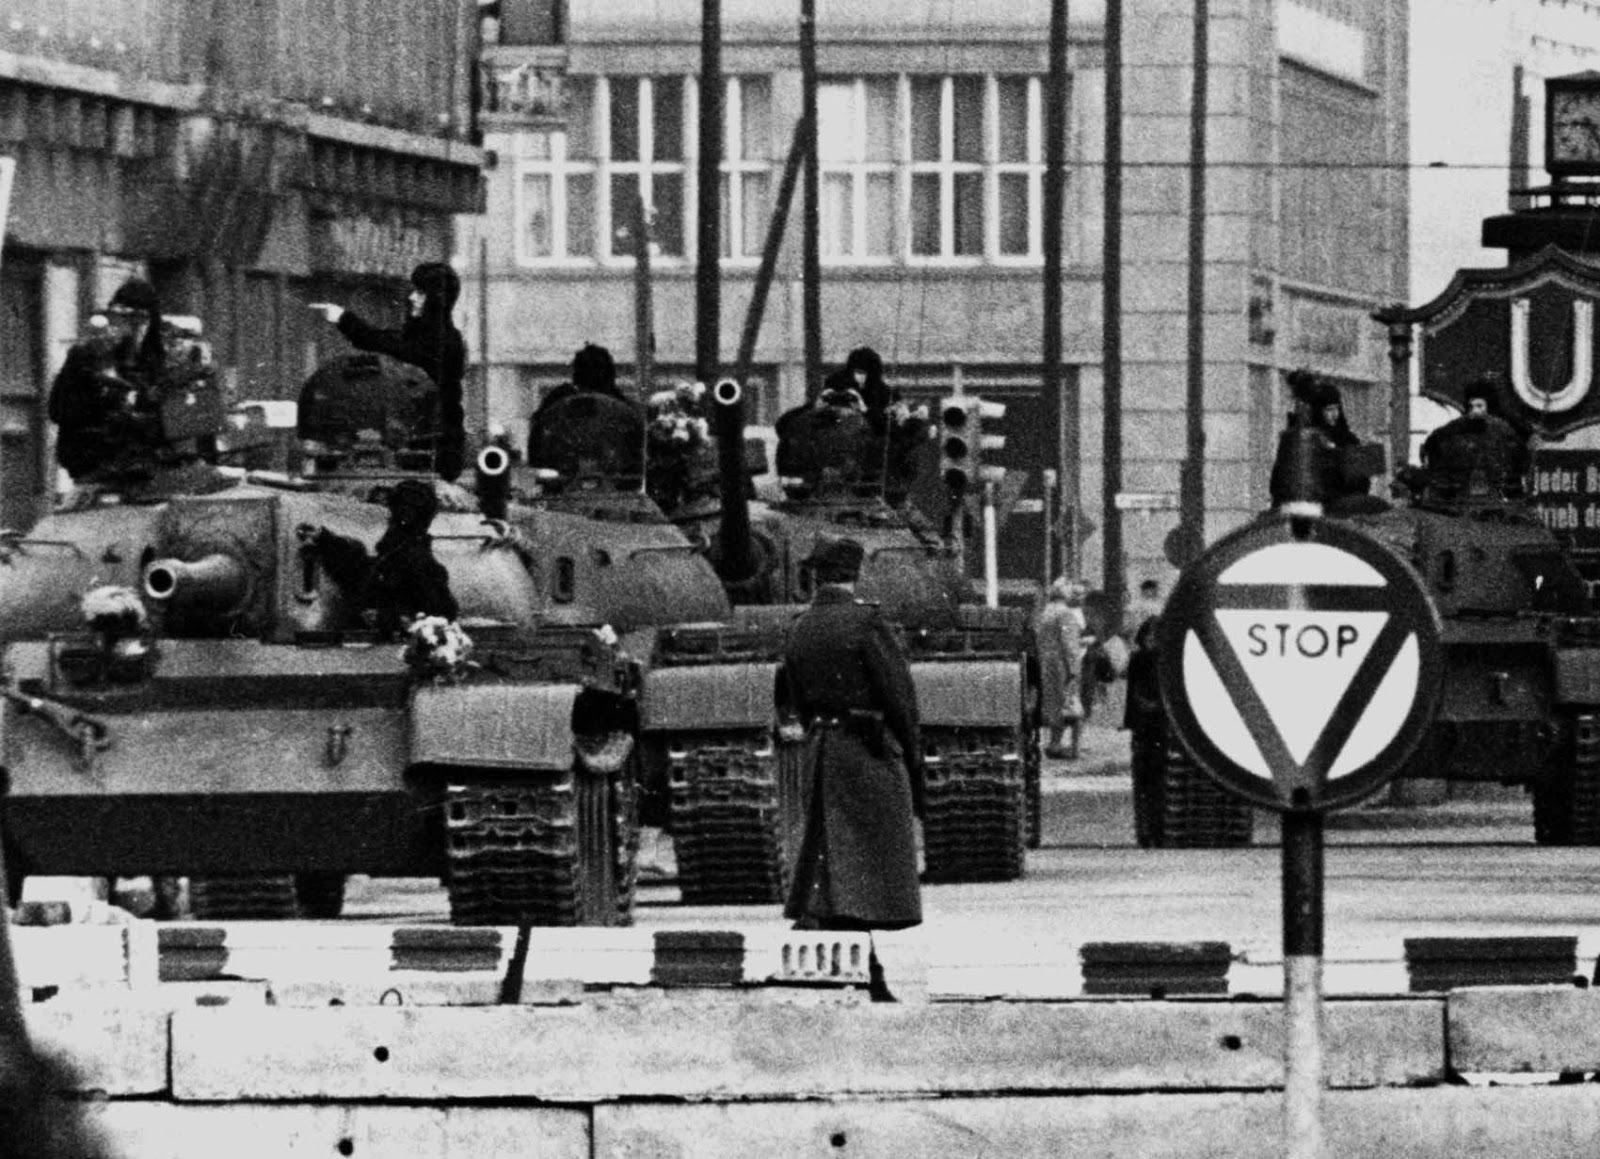 Soviet tanks at Checkpoint Charlie October 27, 1961.